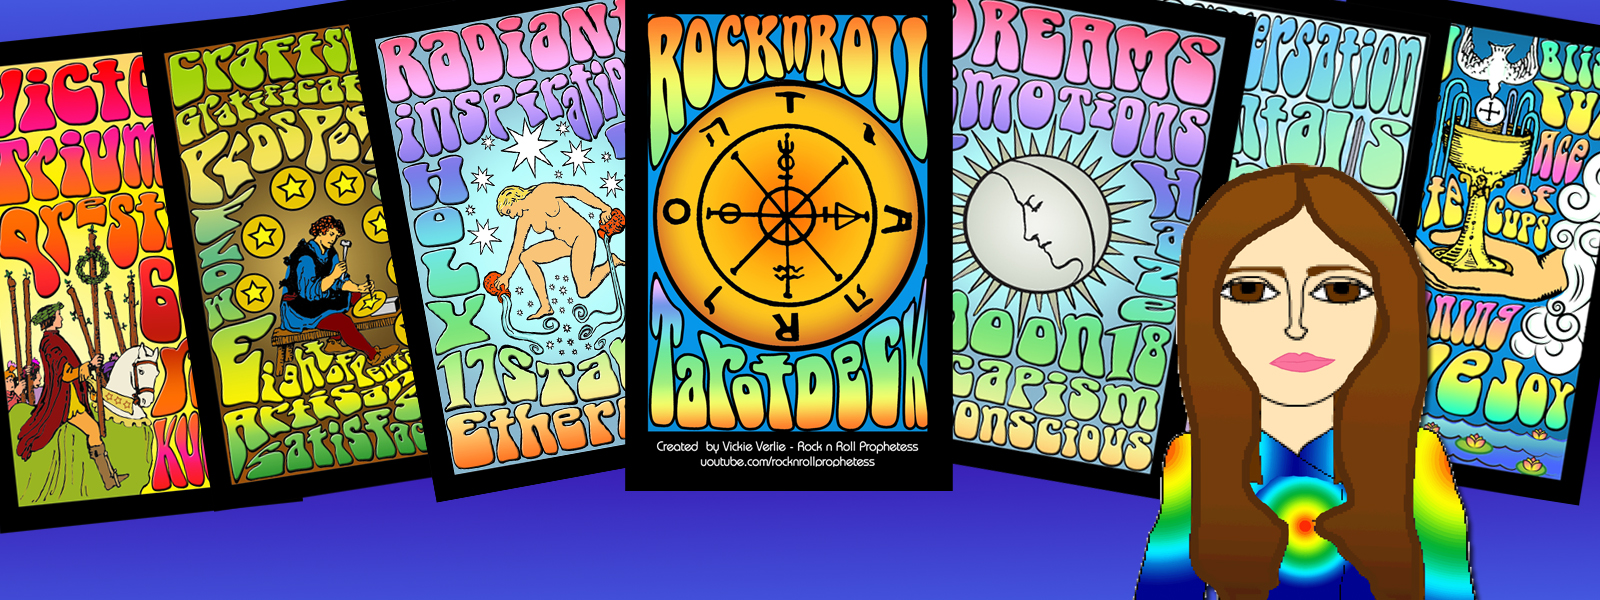 The Rock n Roll Tarot Deck